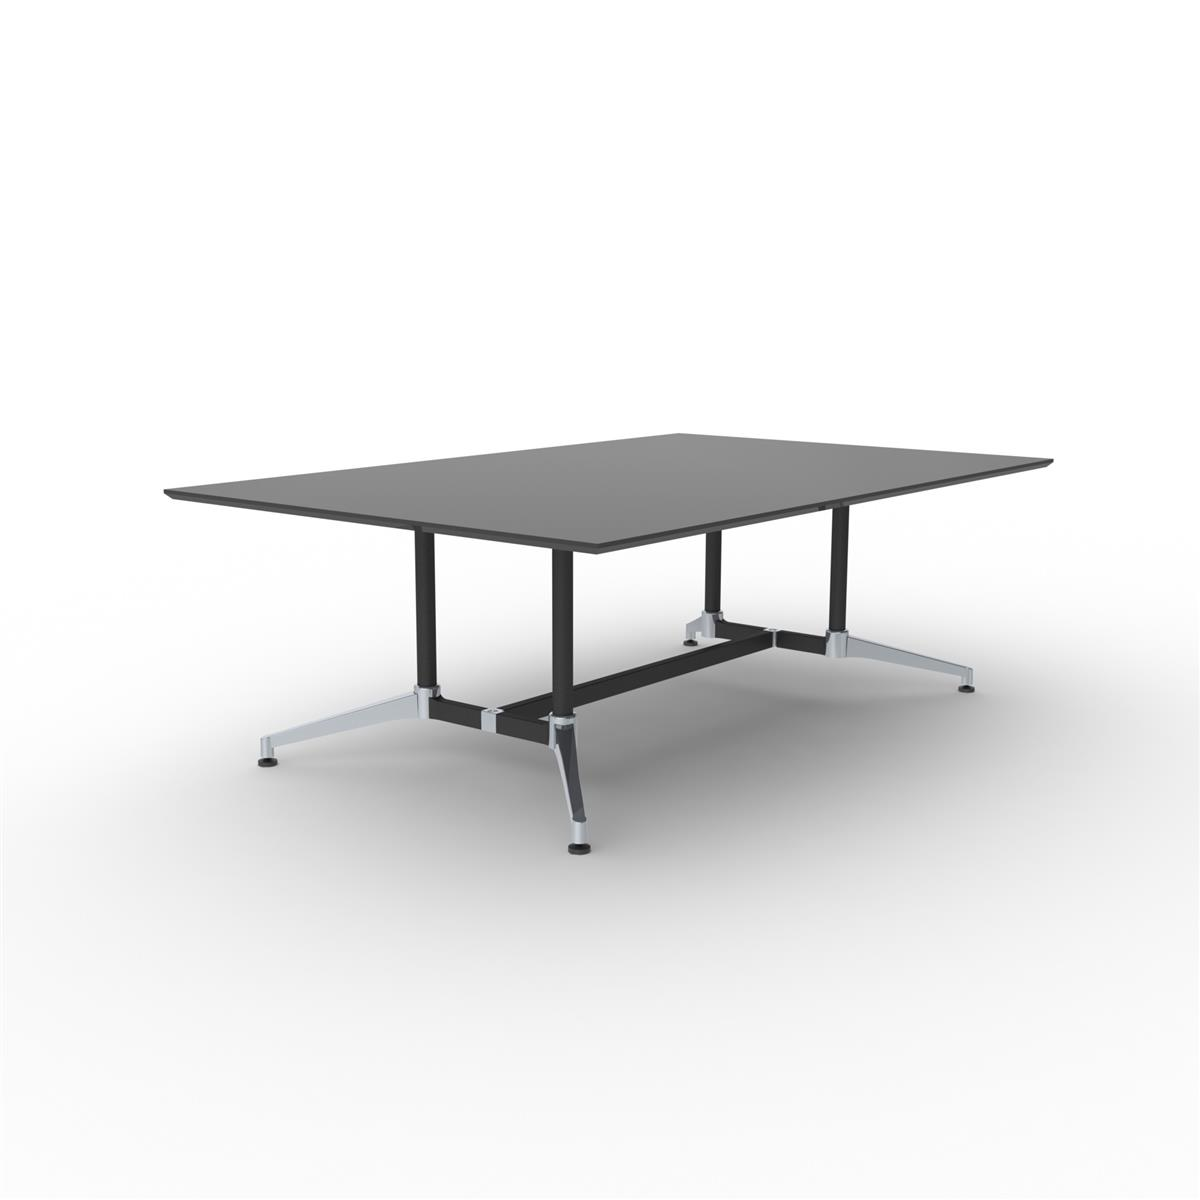 X1 Seamless Table 220 x 140 - sort linoleum & sort/aluminium